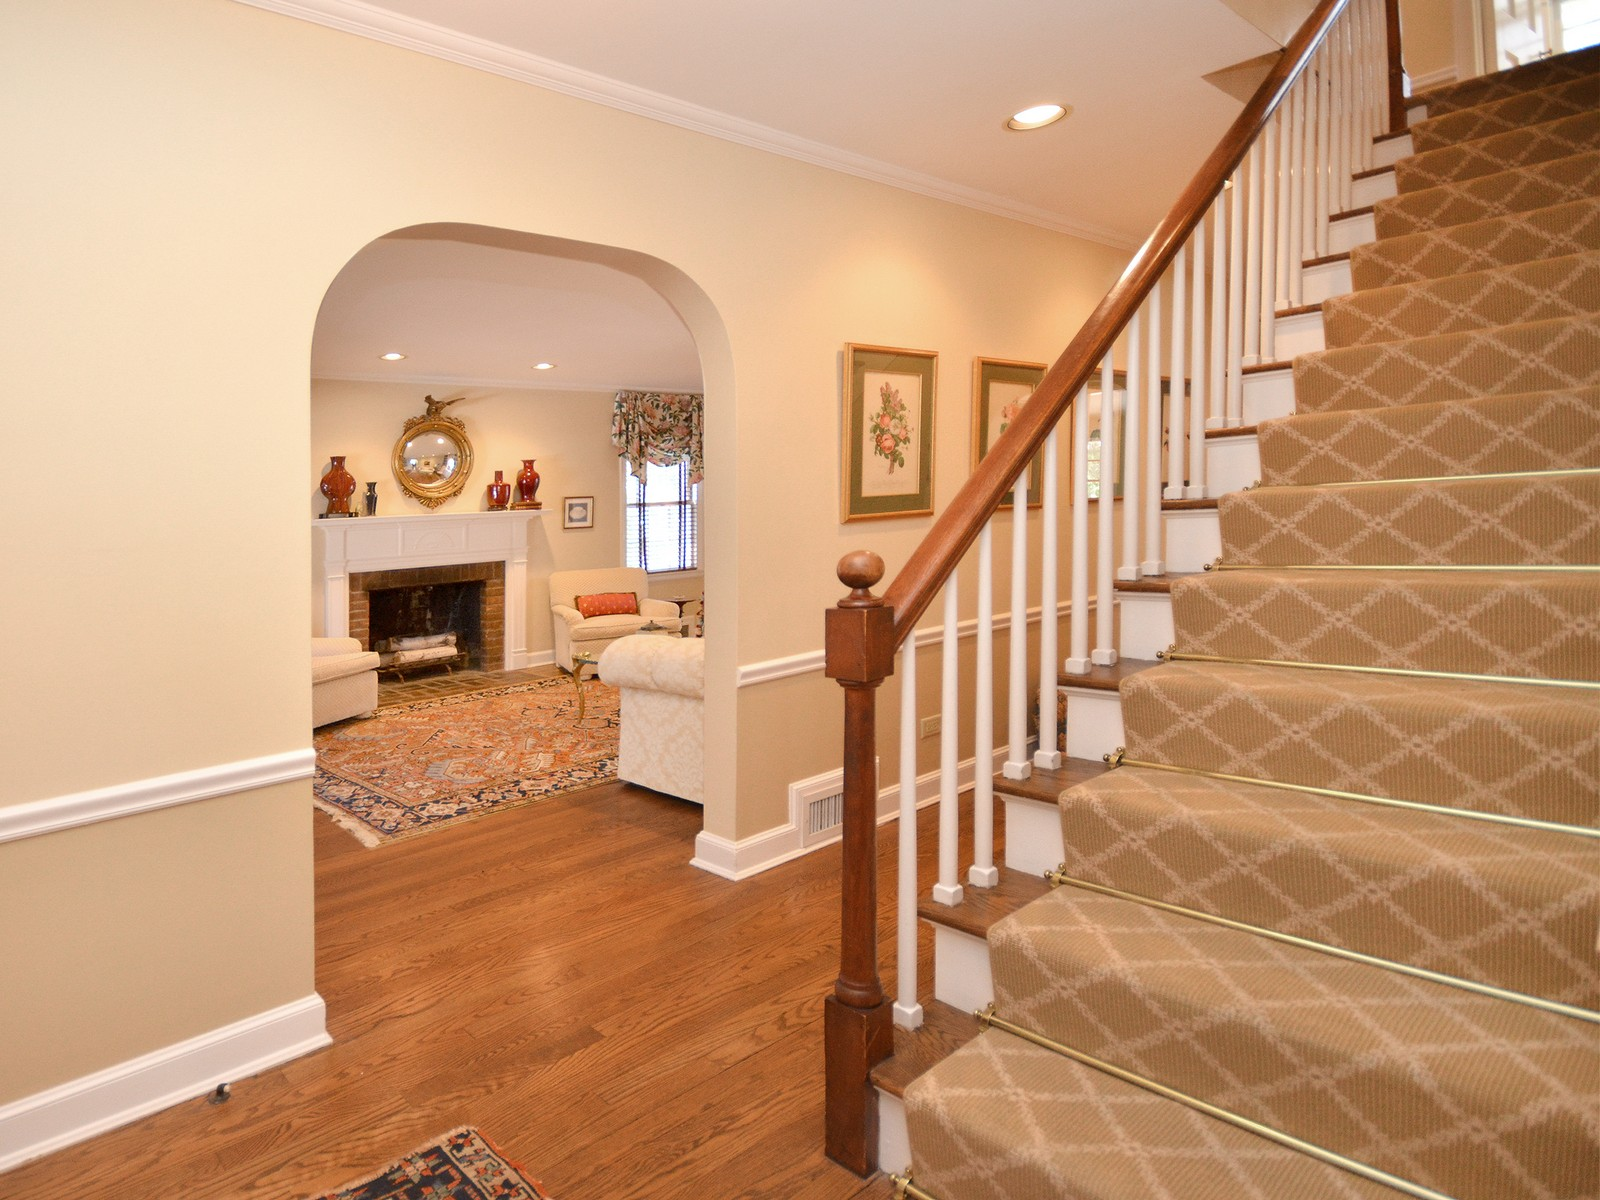 Single Family Home for Sale at Colonial 17 Orchard Farm Rd Port Washington, New York, 11050 United States